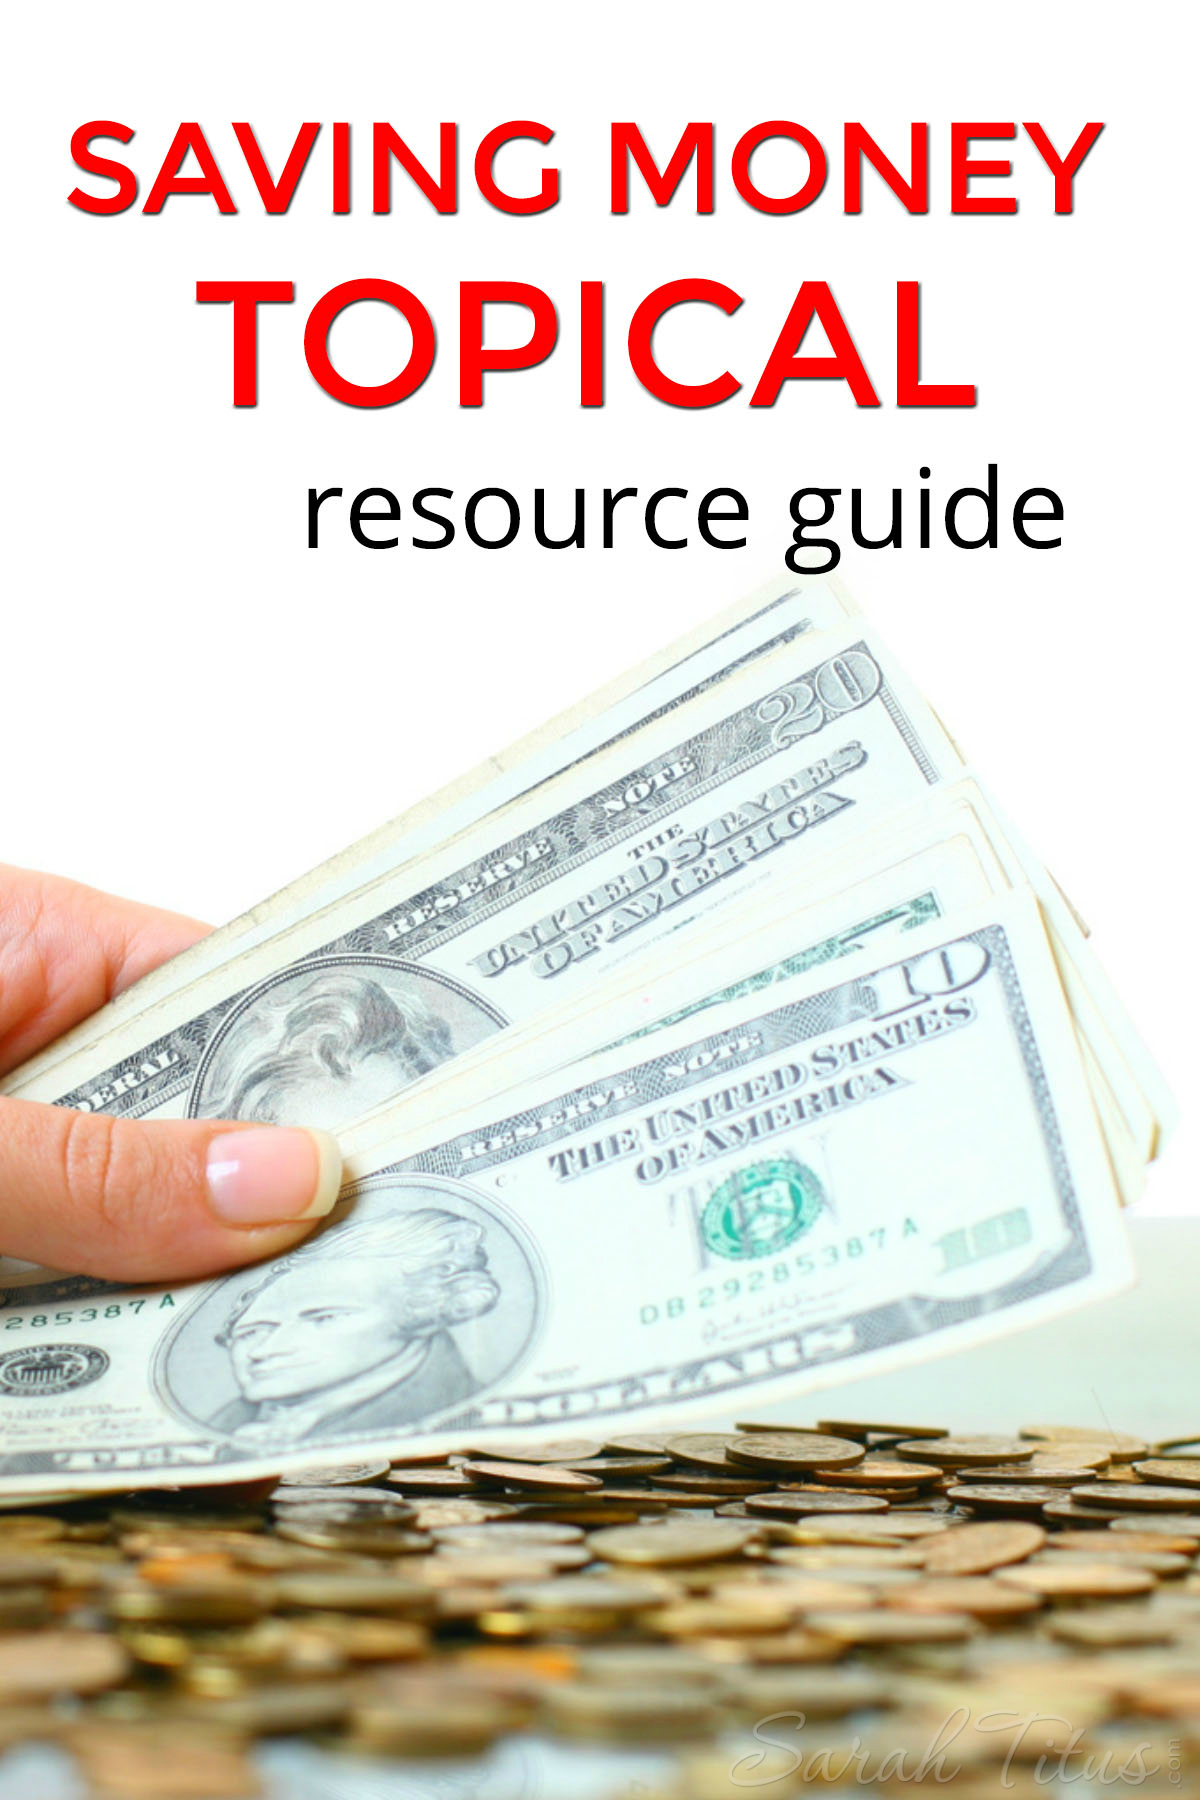 If you're a busy mom and don't have time to scour the internet looking for the best articles on the topic you want to save money on, this Saving Money Topical Resource Guide is perfect for you!